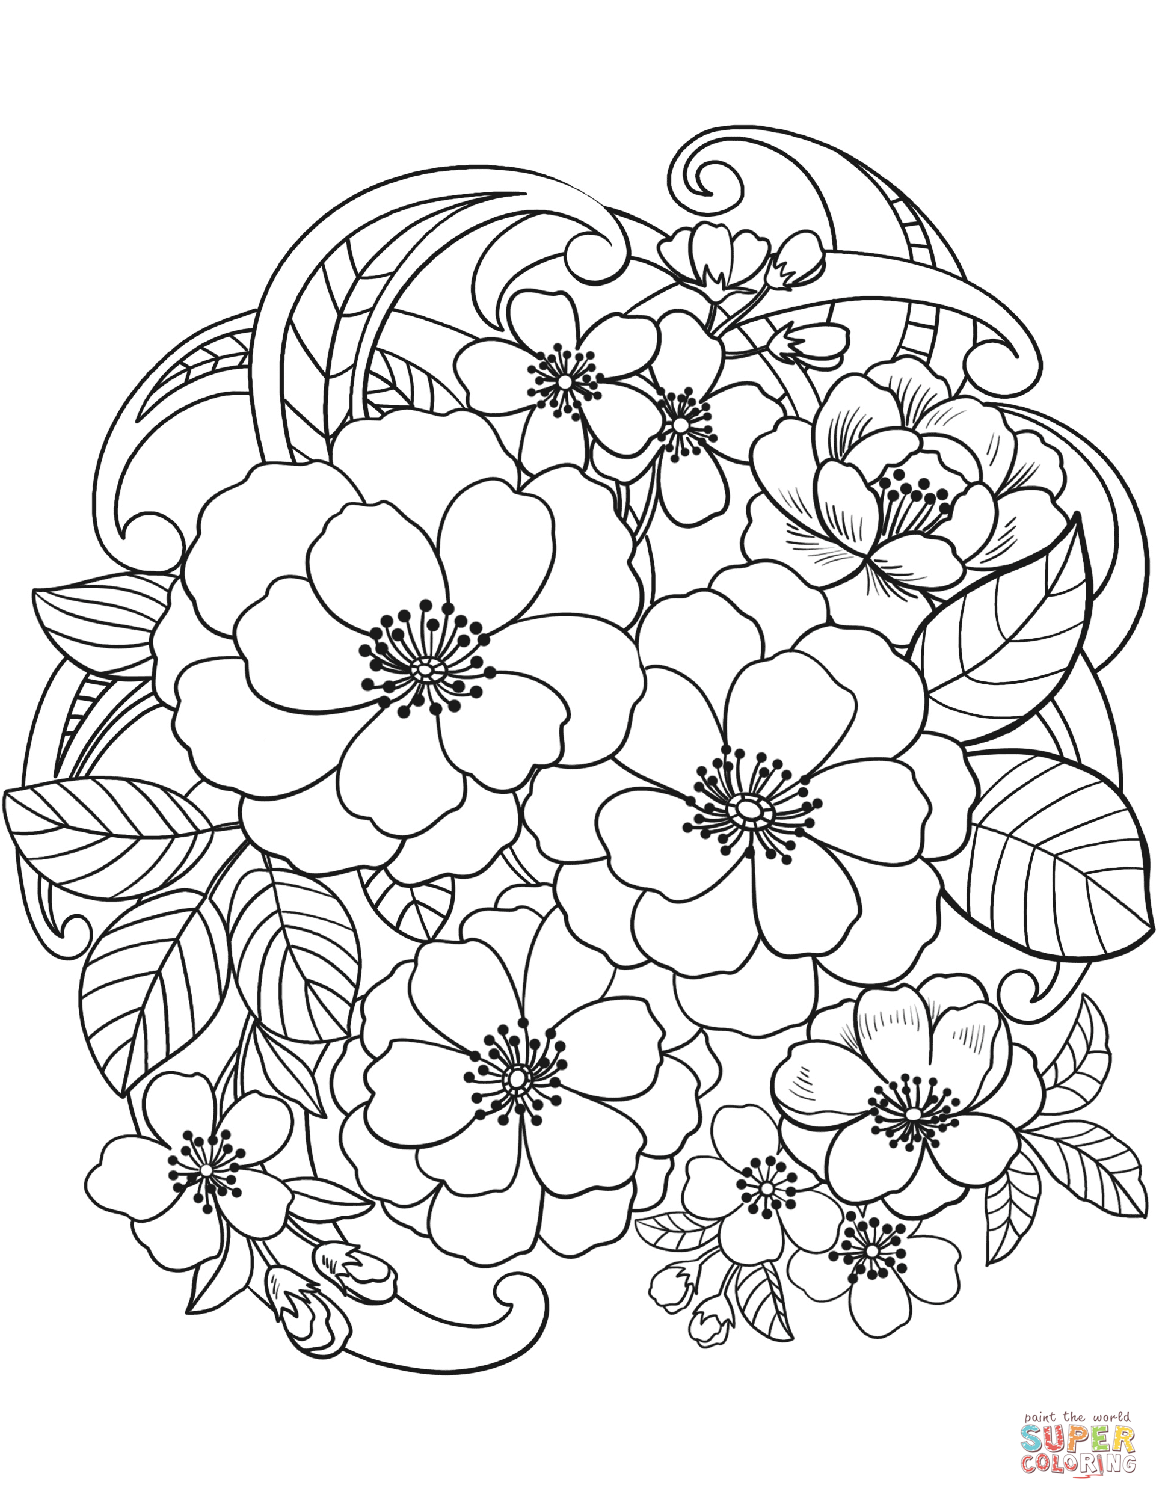 Blooming Flowers Coloring Page Free Printable Coloring Pages Free Coloring Pages Online Coloring Pages Flower Coloring Pages